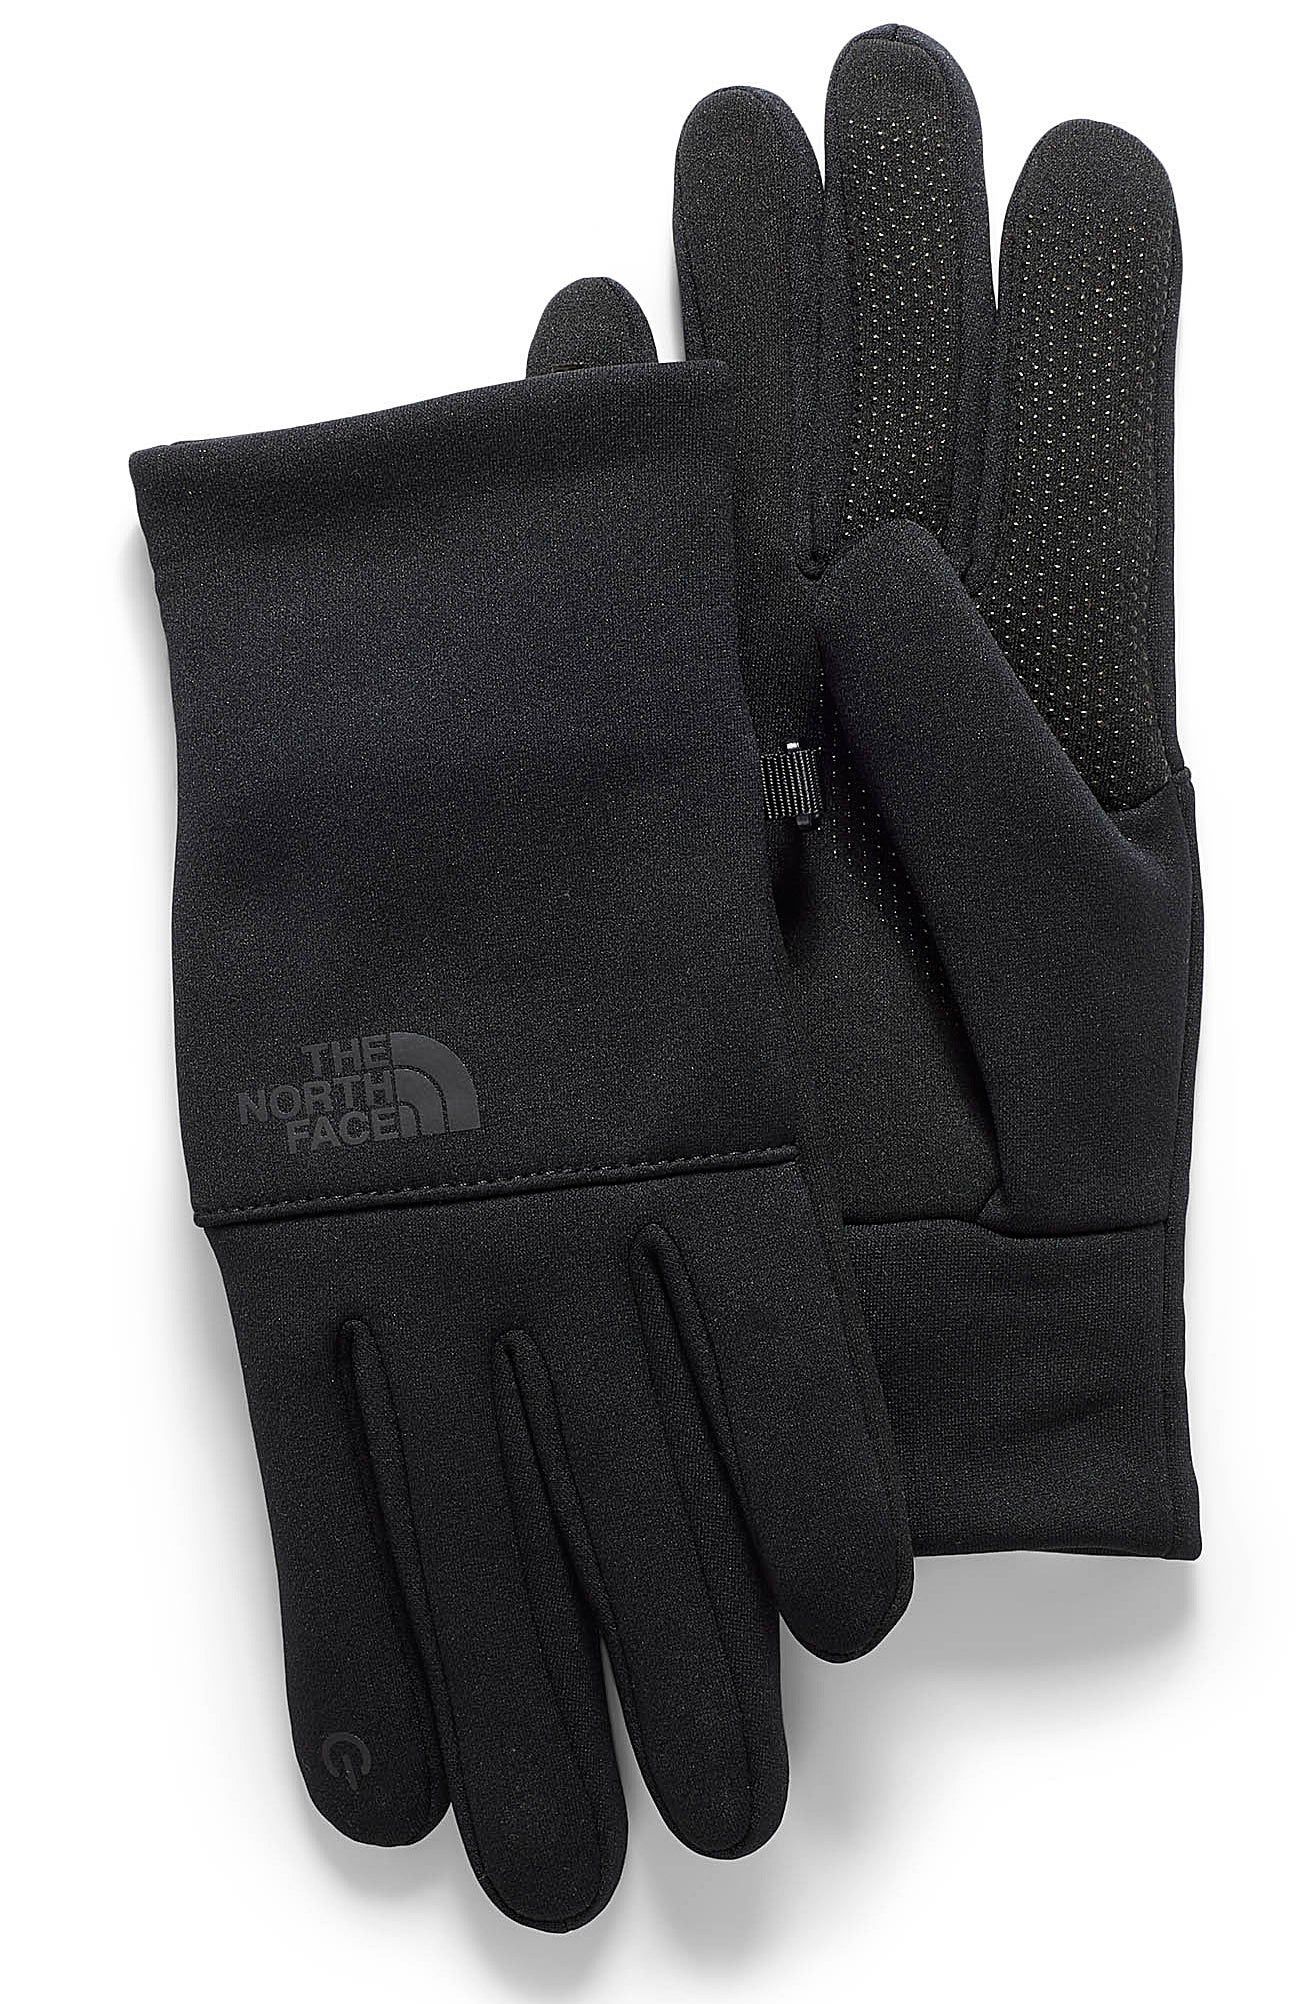 A pair of gloves with grippy dots on the palm